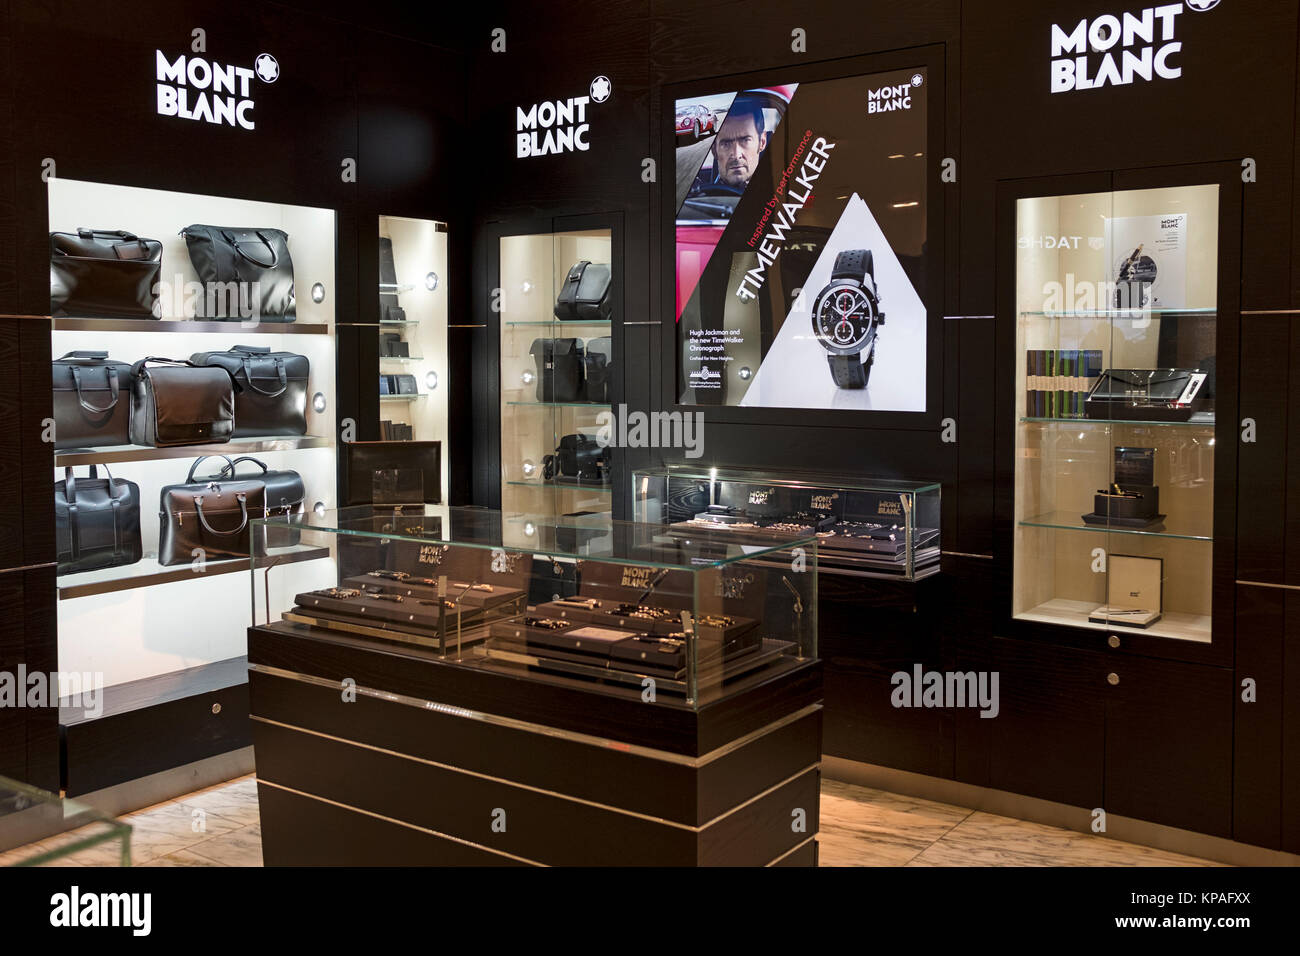 The Montblanc department at Macy's Herald Square selling fine writing instruments, watches and leather goods. - Stock Image